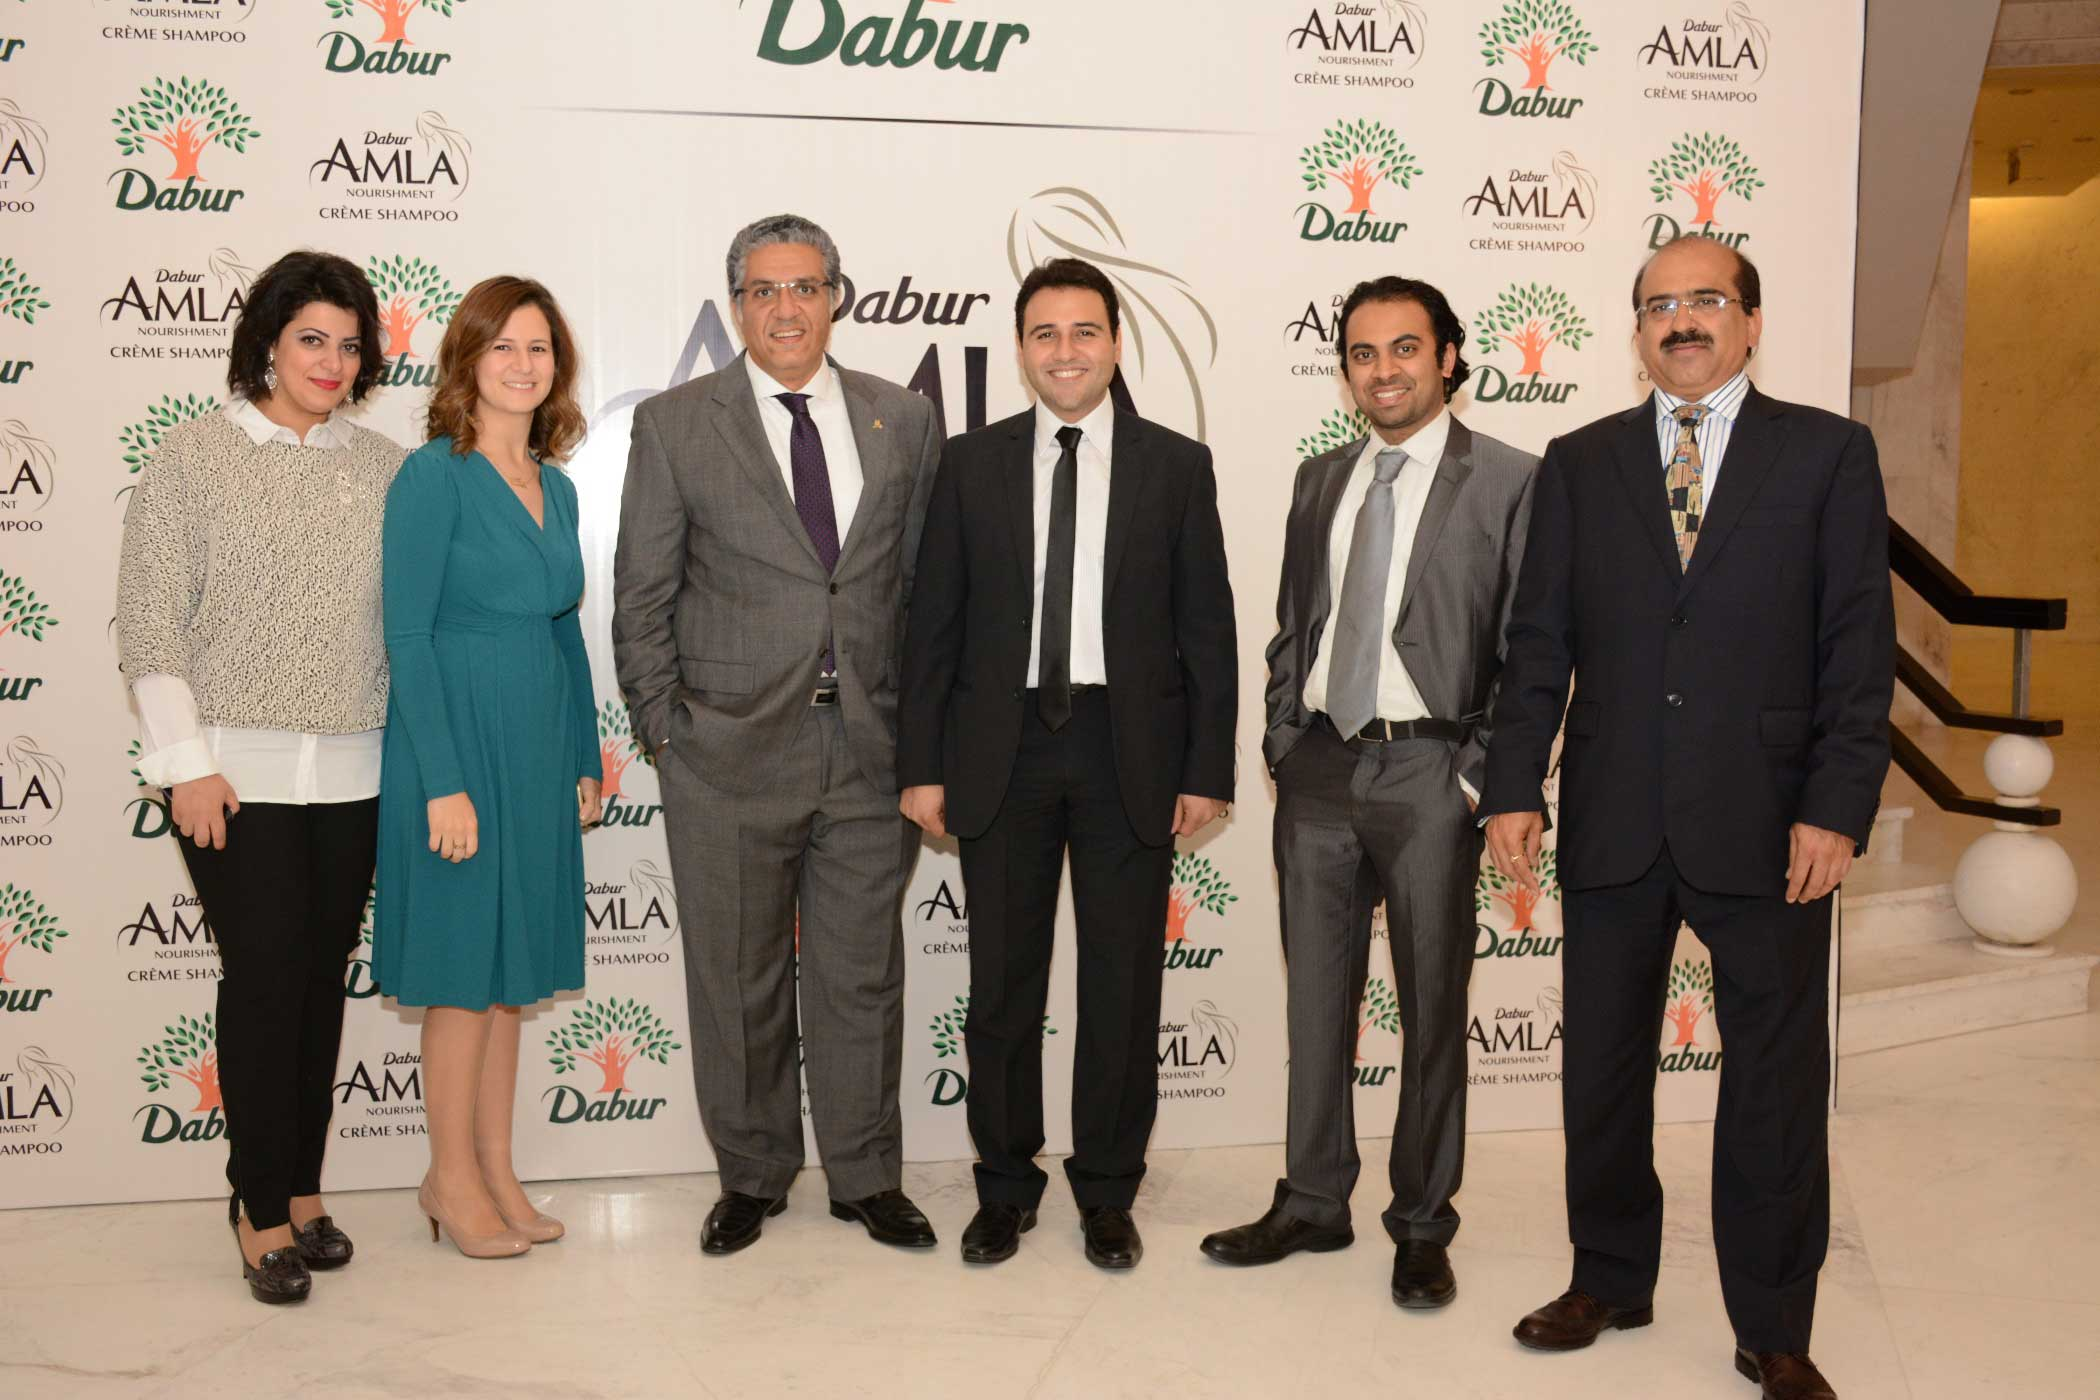 Dabur Egypt honours top-performing business partners & distributors at Amla Shampoo Launch Event